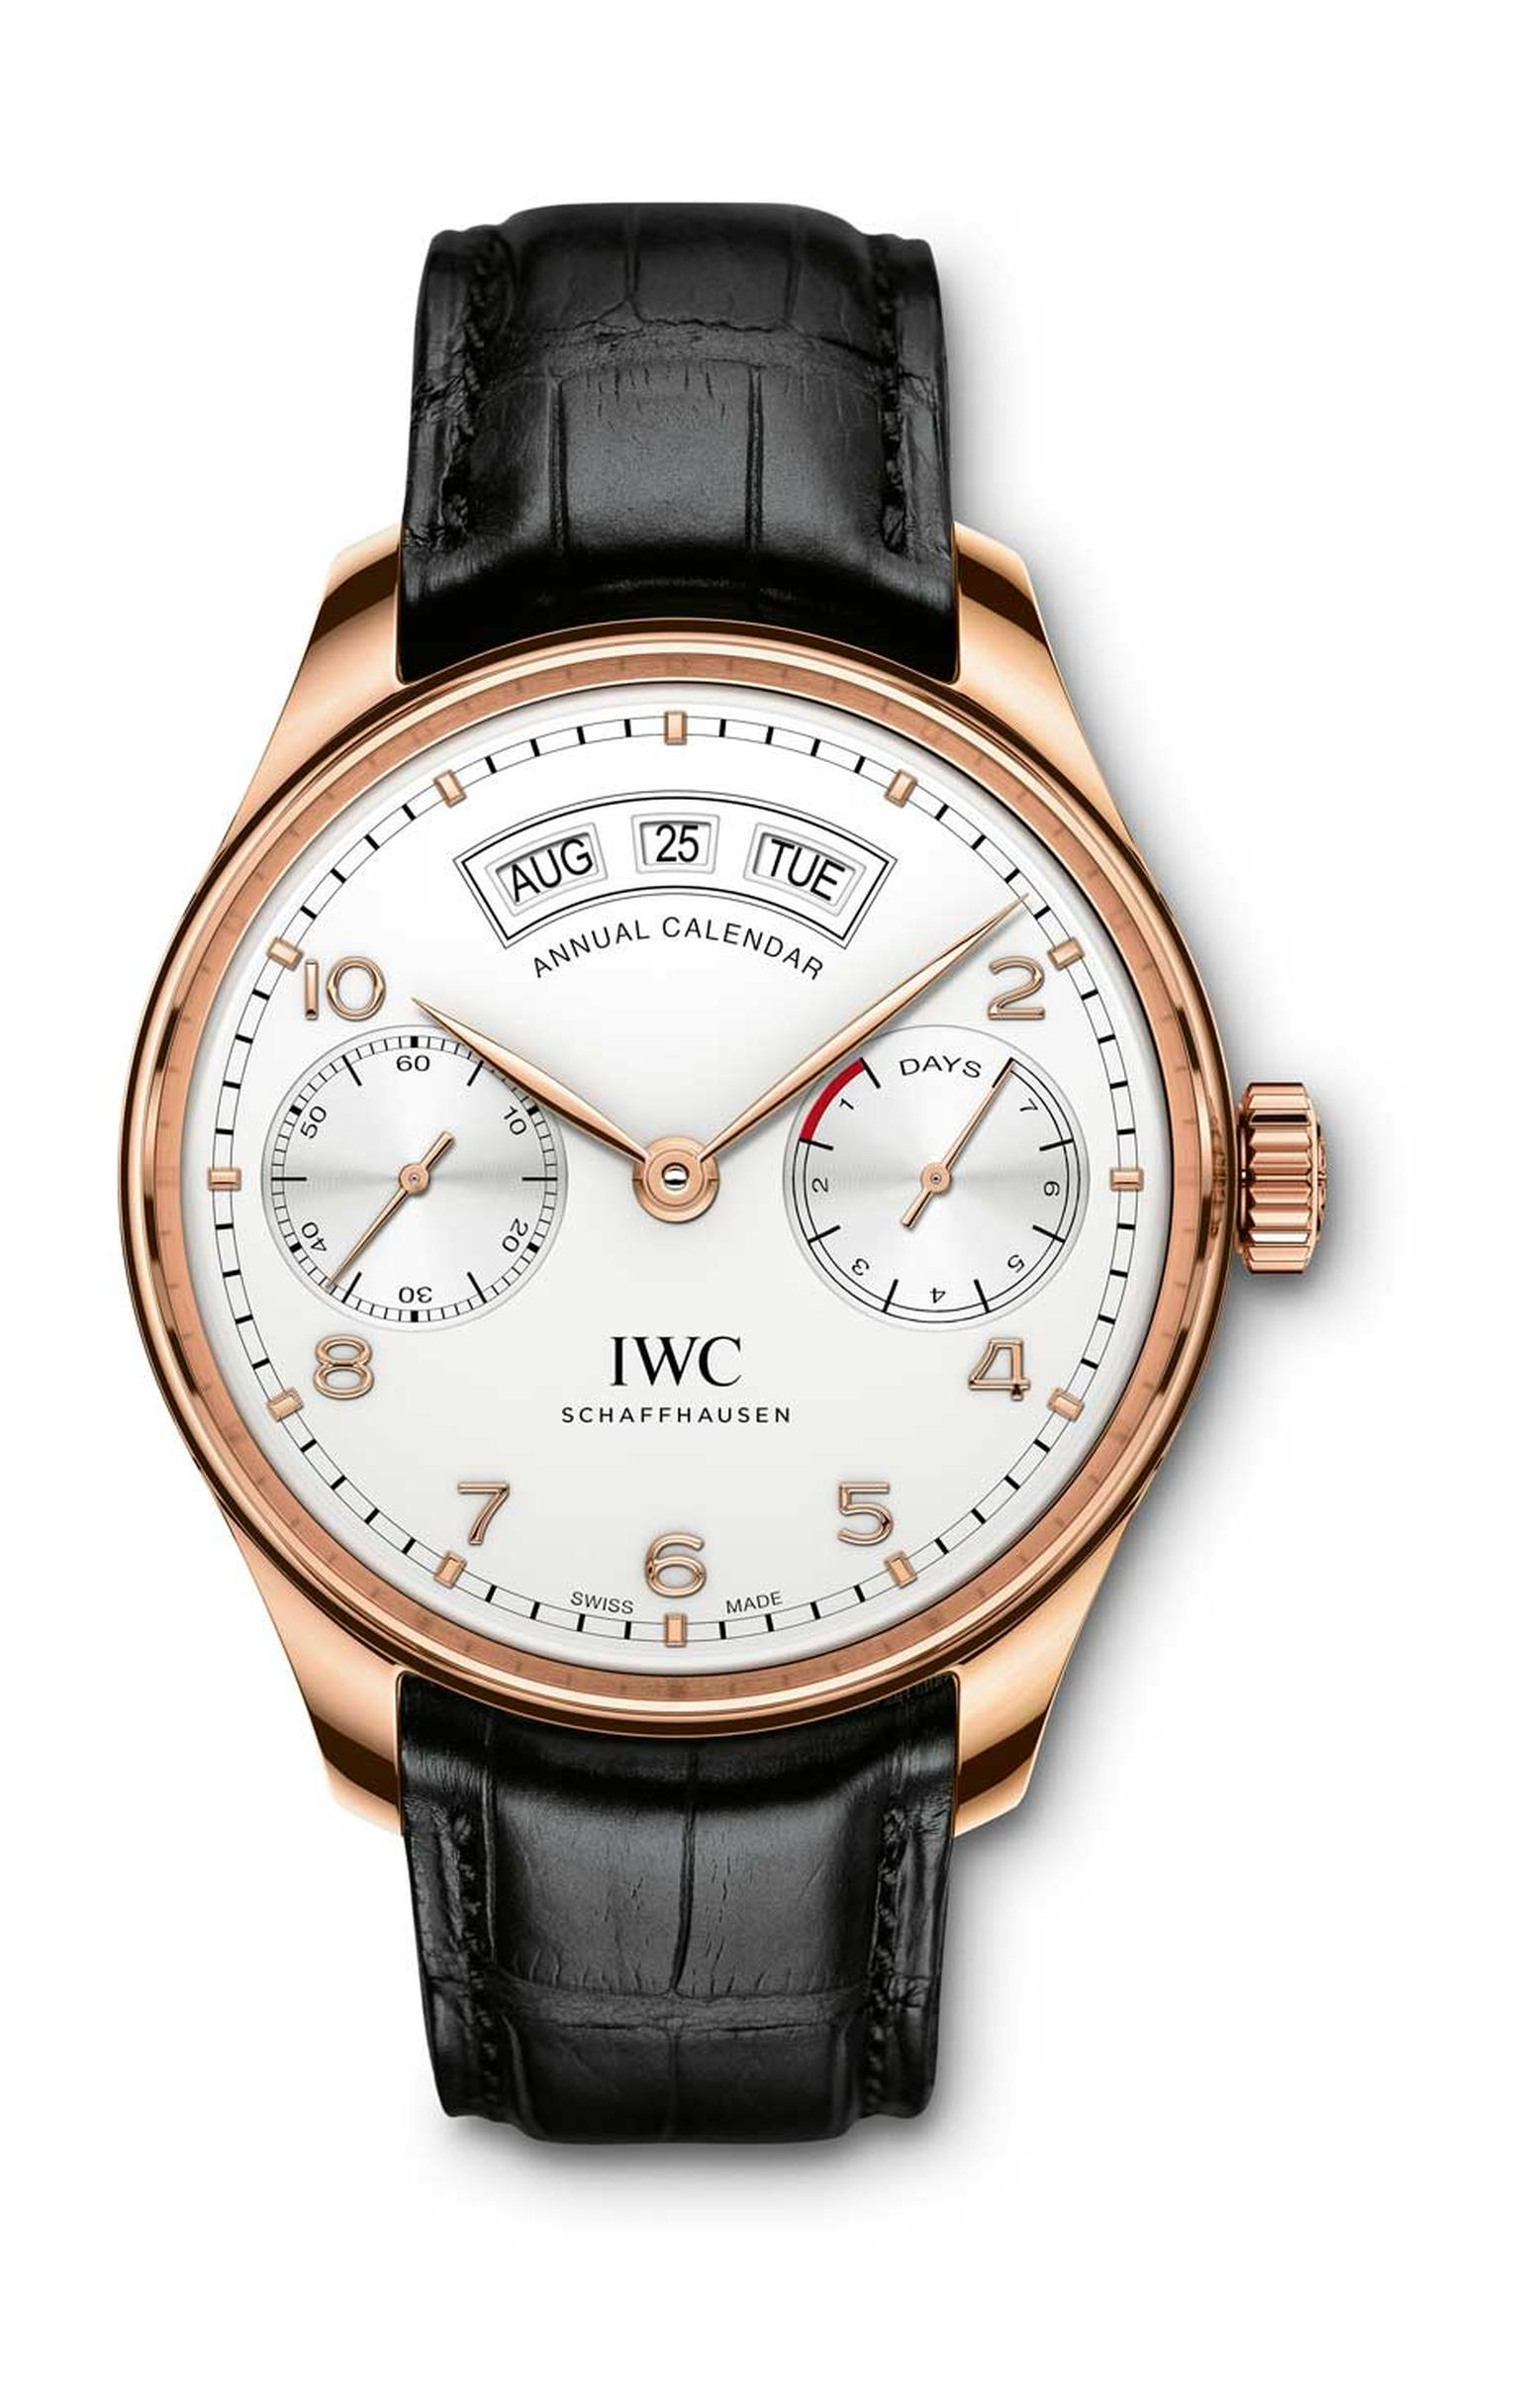 2015 heralds the Year of the Portugieser with IWC's debut of an annual calendar watch fitted with the new in-house 52850 calibre, which took engineers five years to develop.